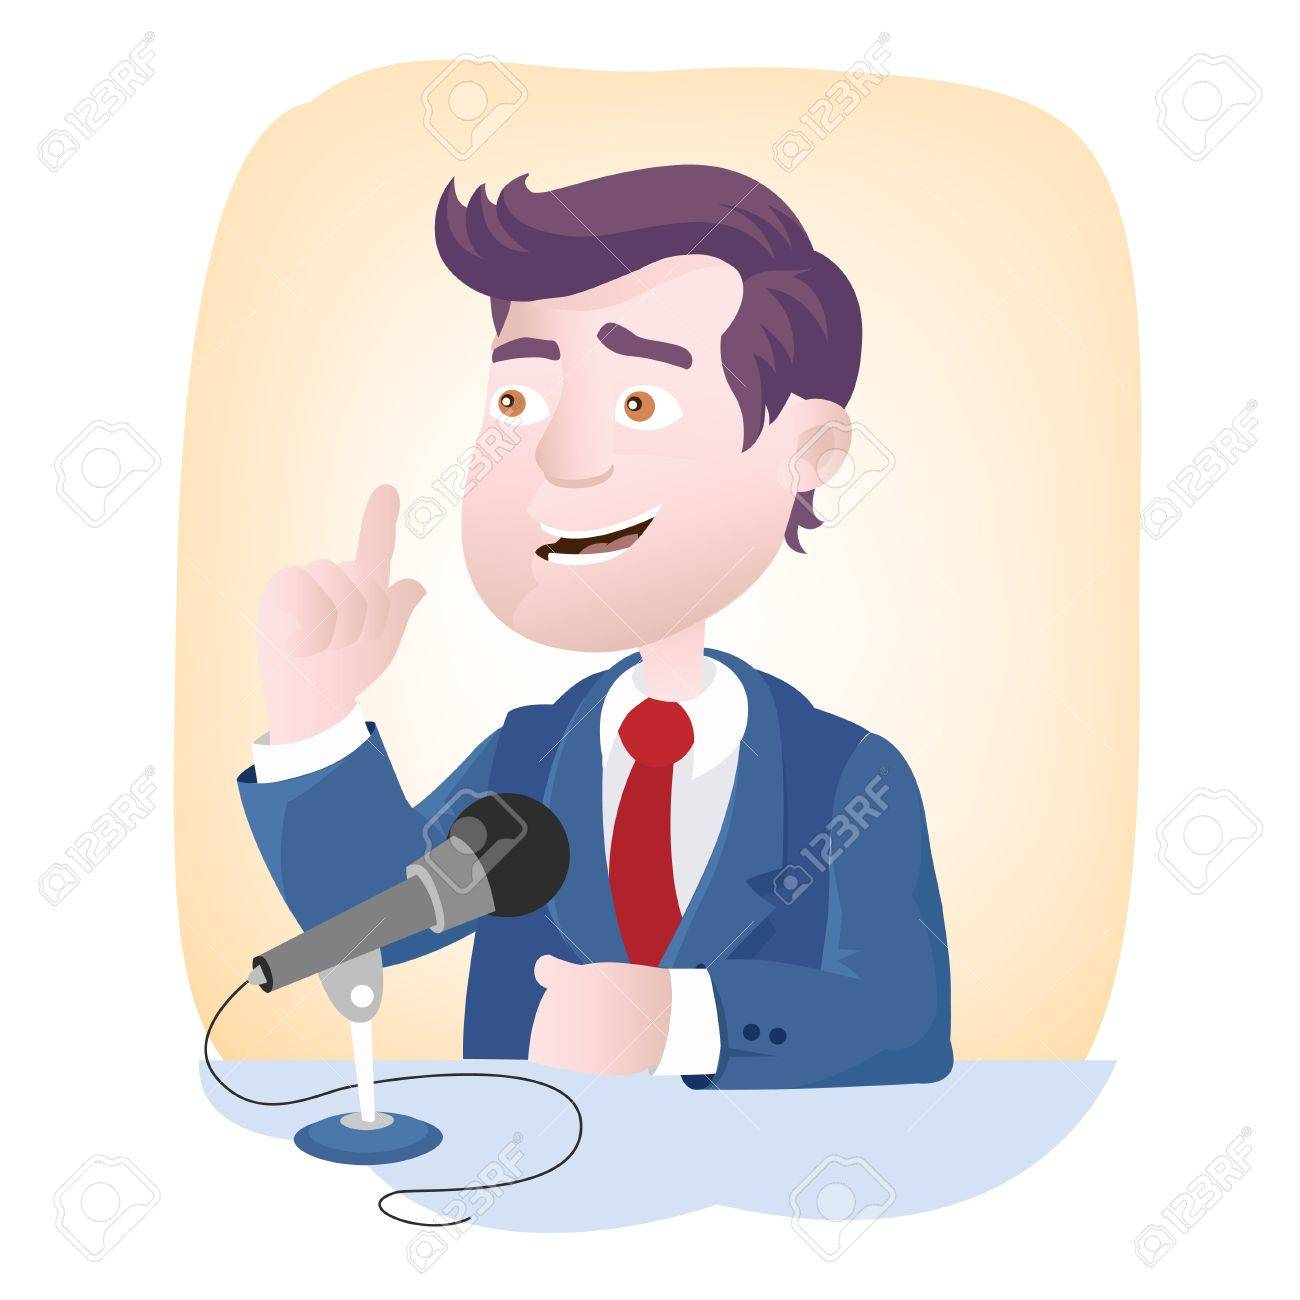 Speech microphone - gesture and facial expression of speaker Stock Vector - 17660471